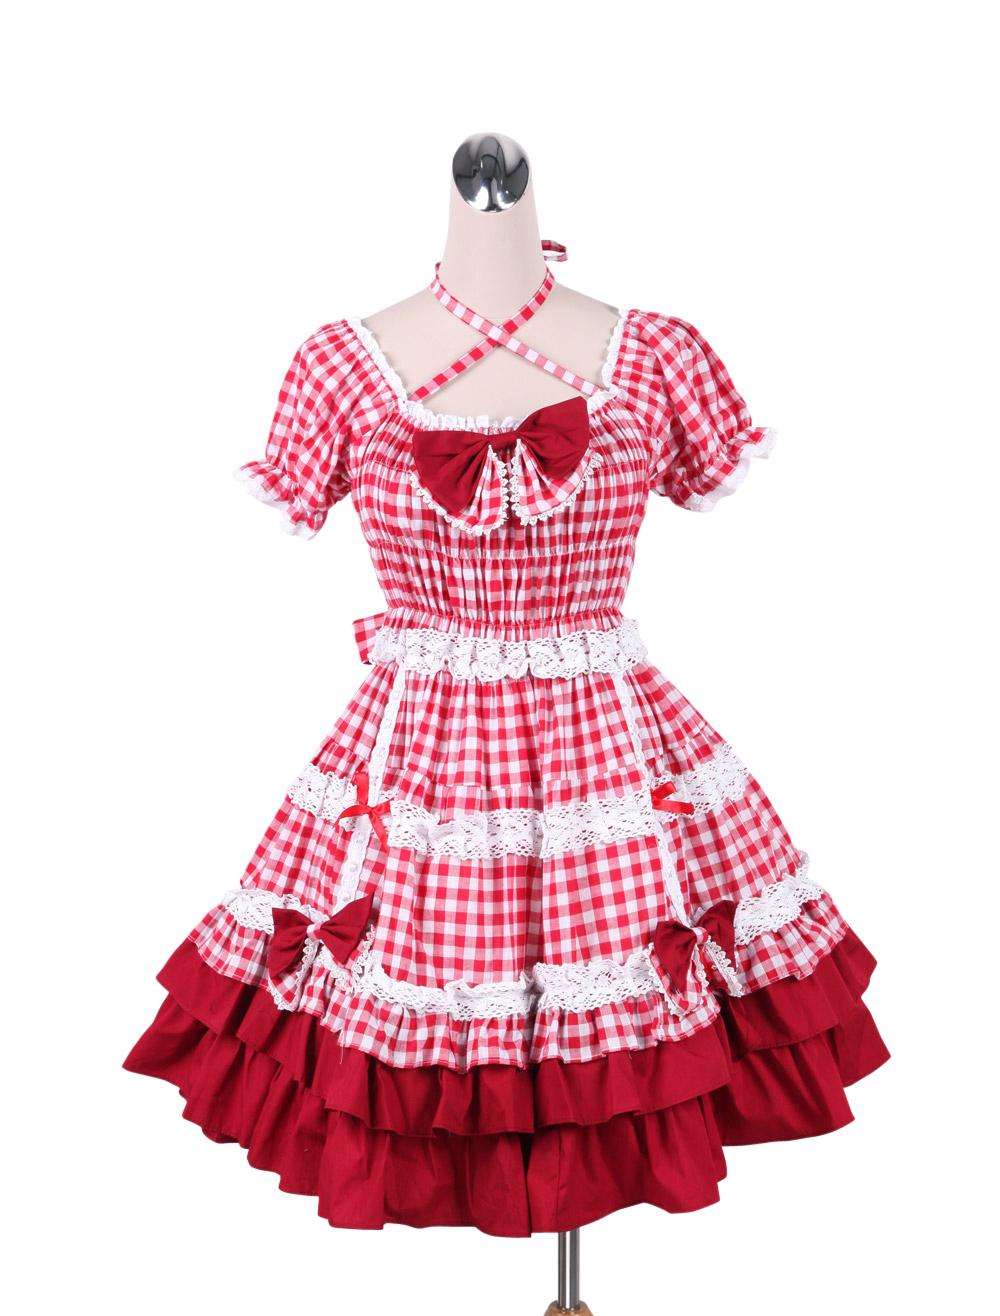 Primary image for ZeroMart Red Cotton Bow Ruffles Vintage Victorian Sweet School Lolita Dress